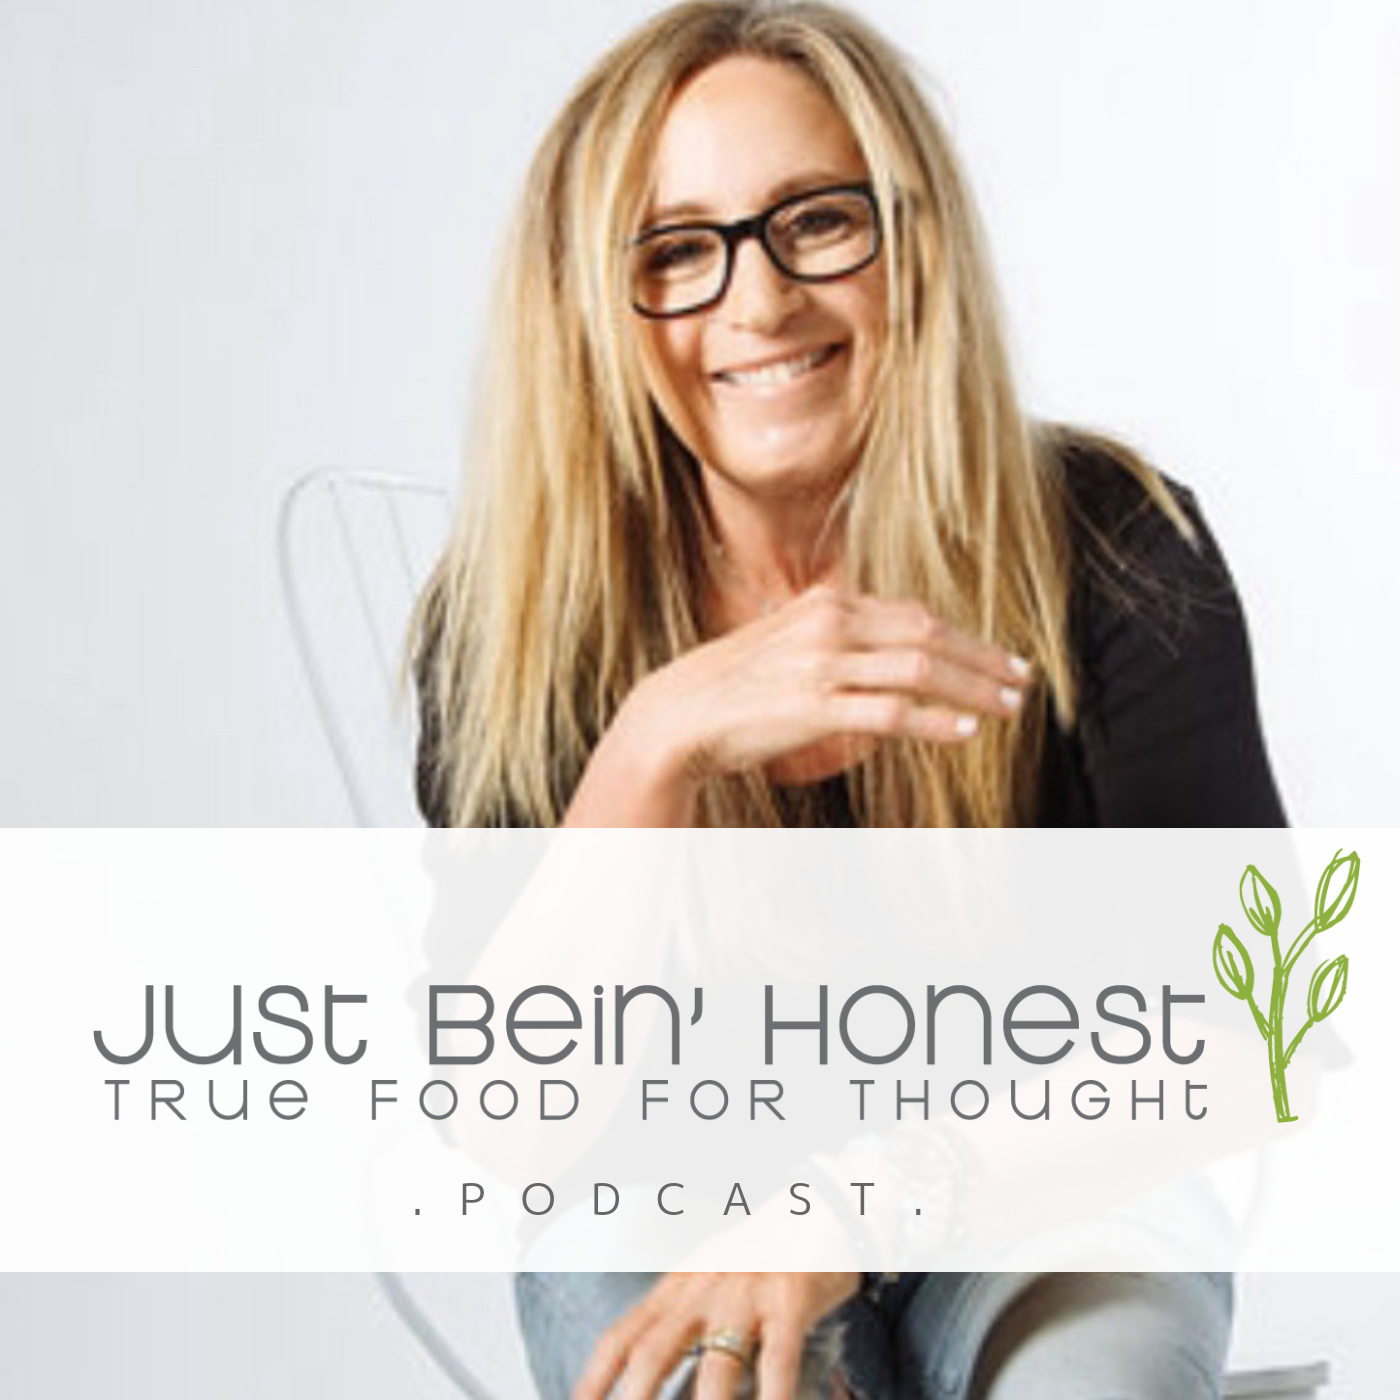 SANDY ABRAMS Ep 64 _ Just Bein' Honest - PODCAST